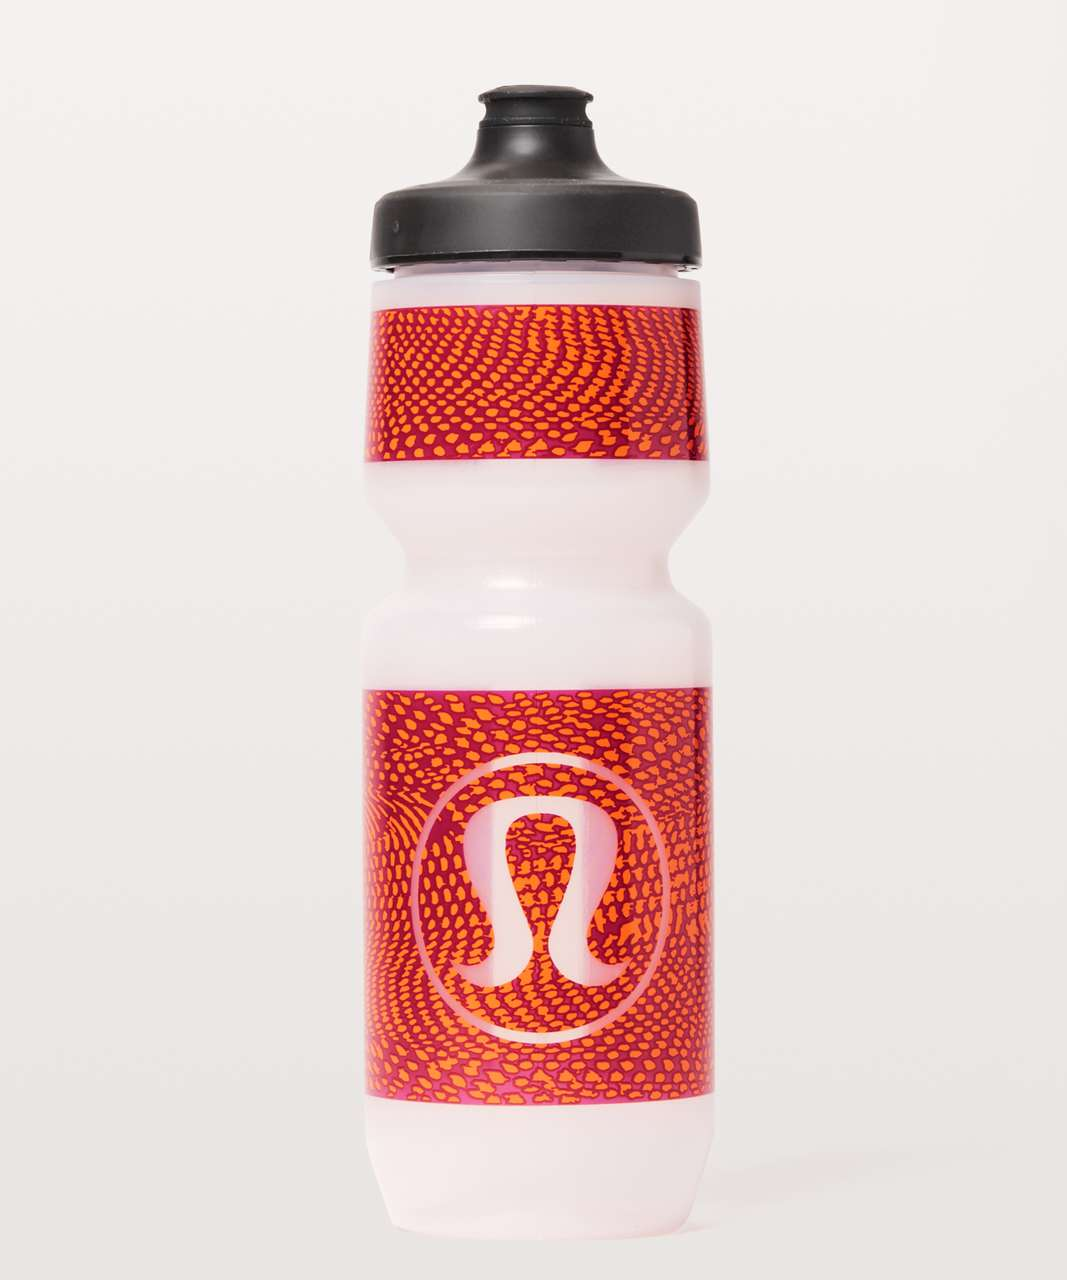 Lululemon Purist Cycling Water Bottle *26 oz - Purist Dotted Speckled Glossy Violetta Shade